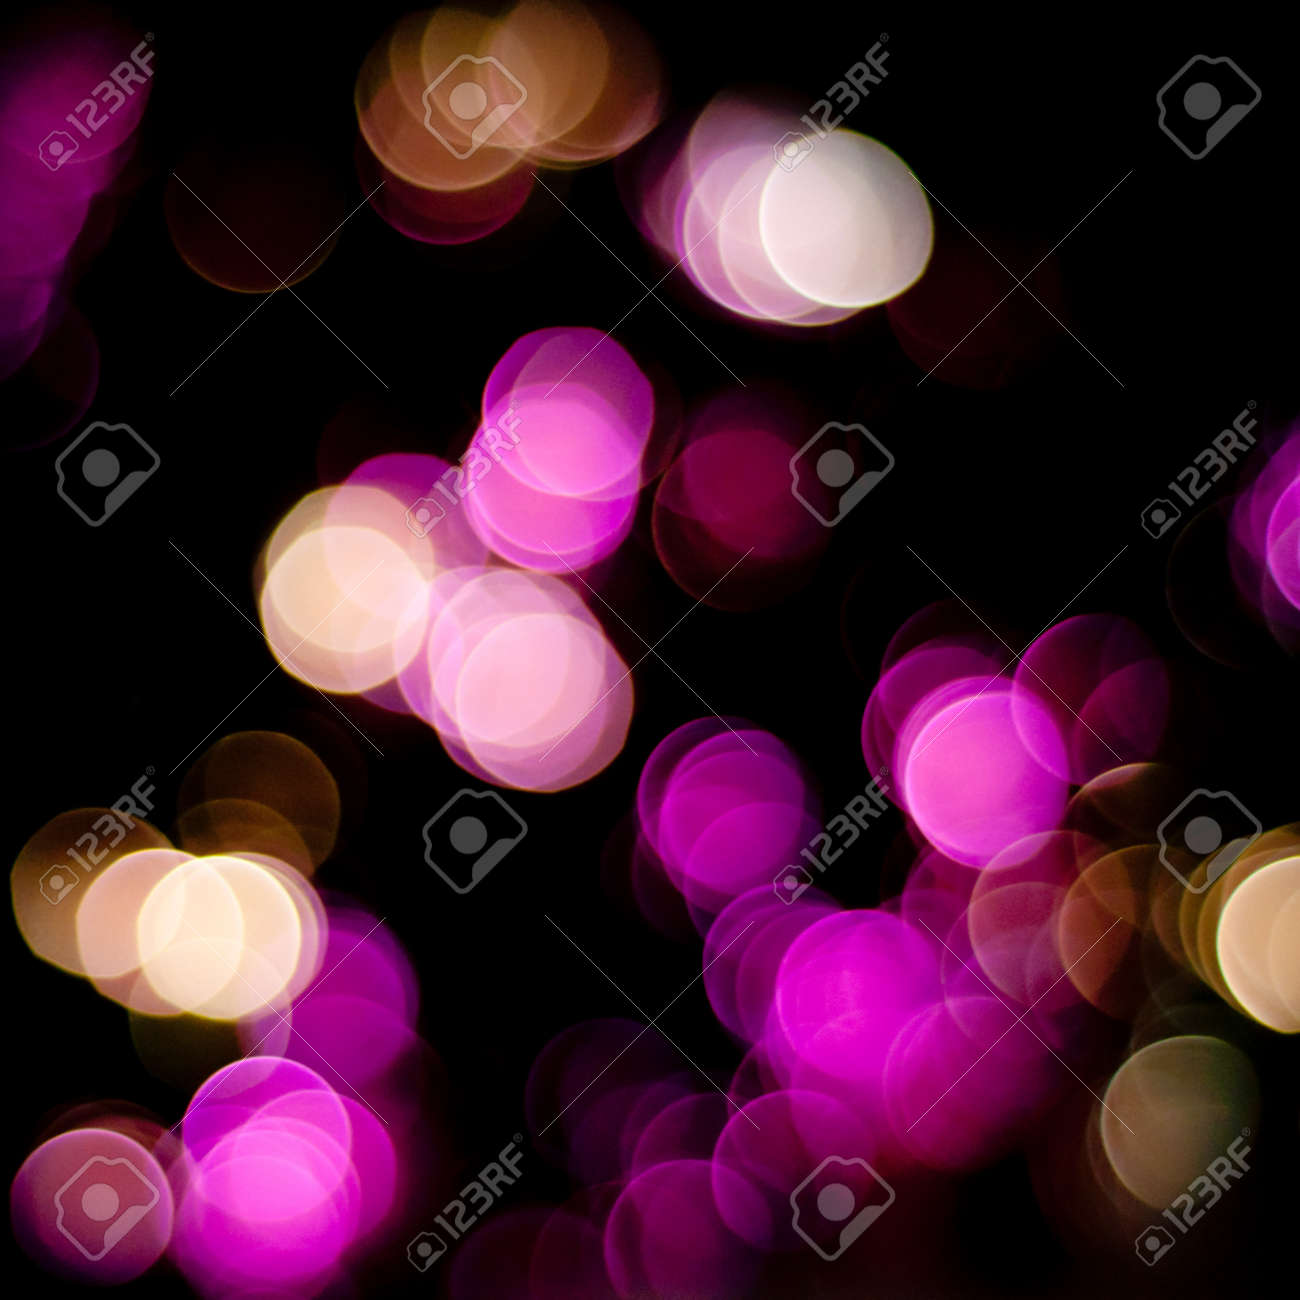 Christmas blurred lights background. Defocused lights background. Bokeh sparkling lights. Abstract colorful background. Stock Photo - 17757880